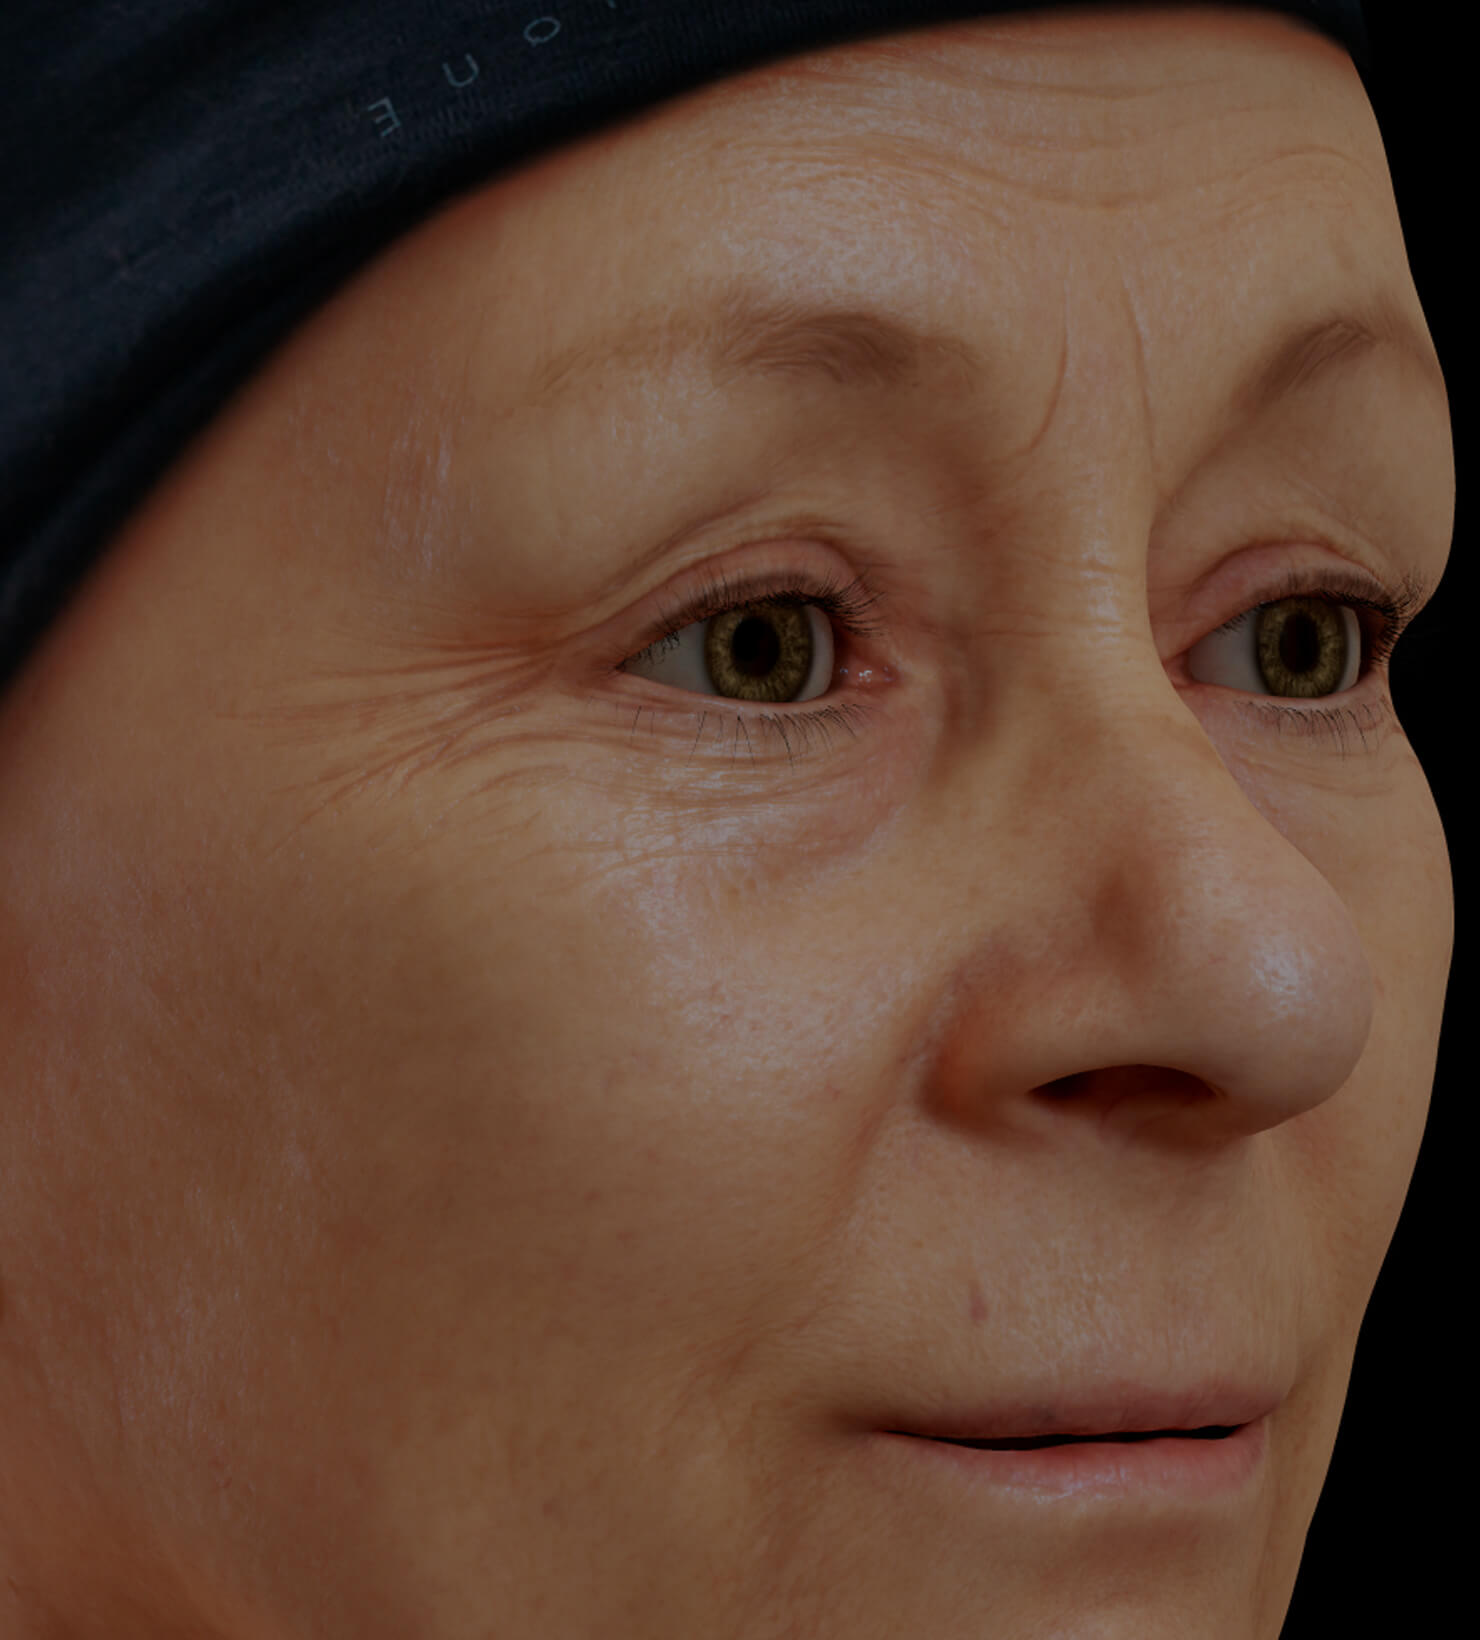 Clinique Chloé female patient with facial fine lines and wrinkles treated with mesotherapy for wrinkle reduction